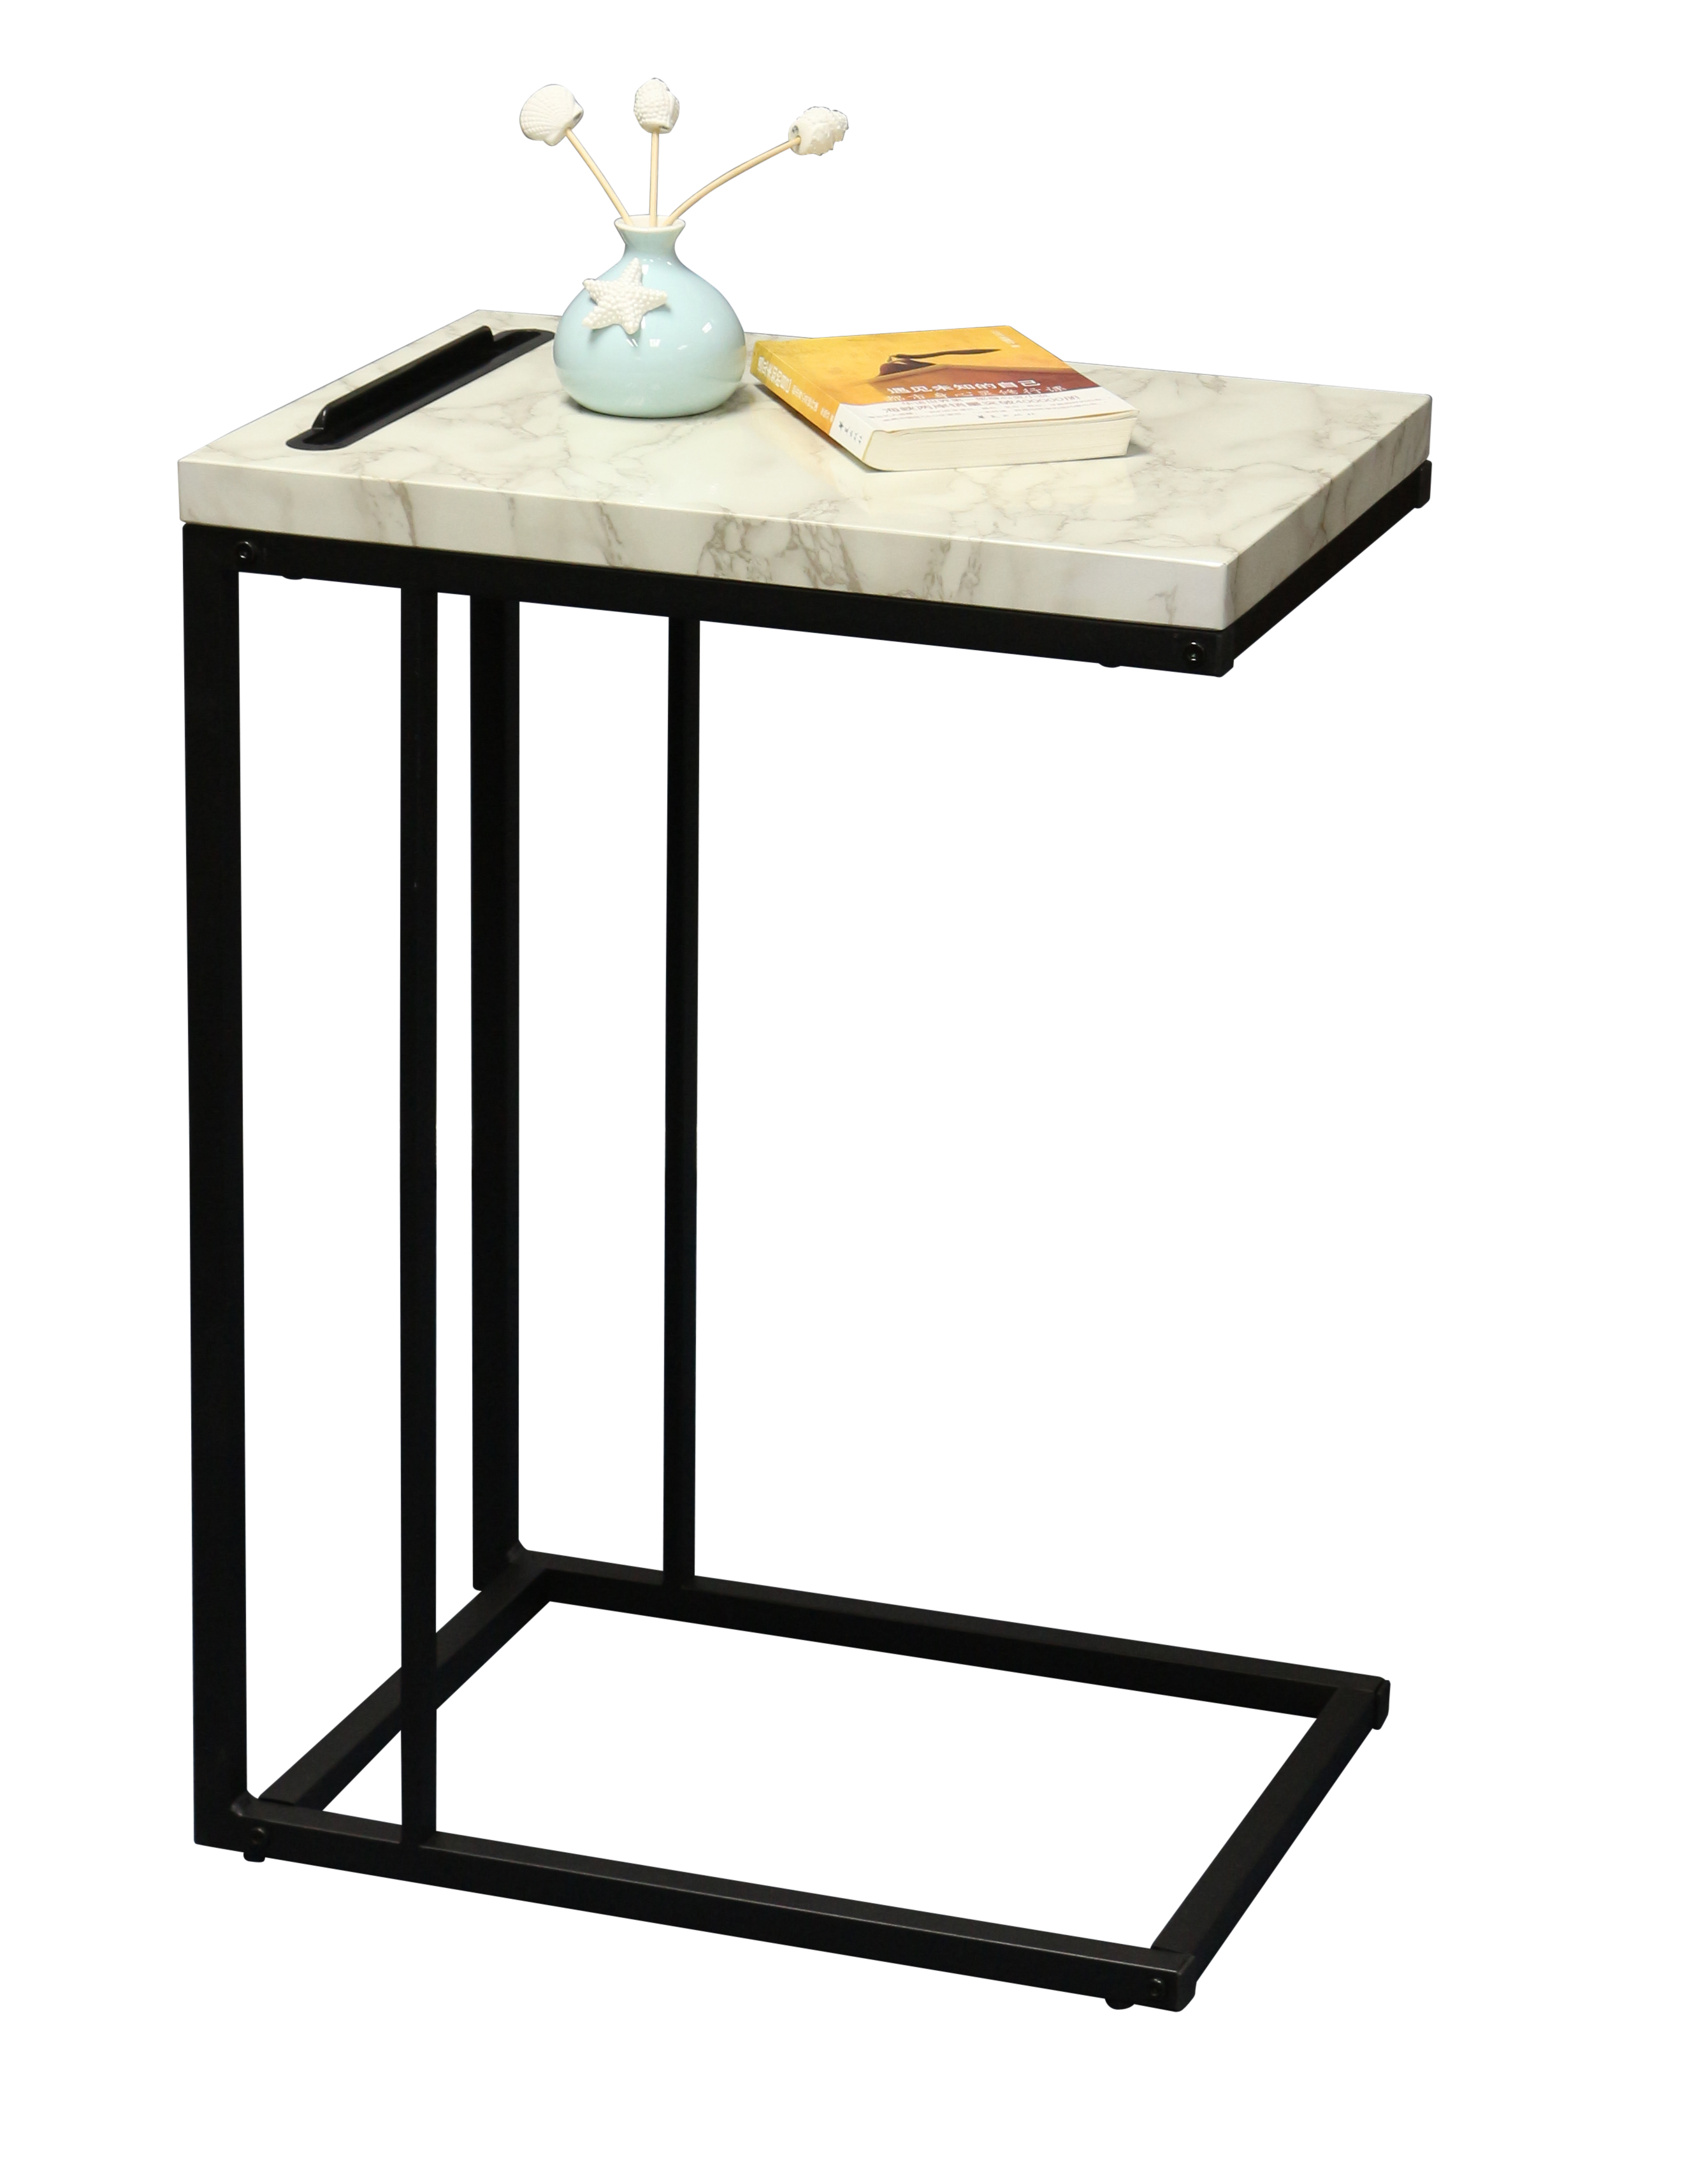 Slide Under Sofa Side Table With Faux Marble Top And Iphone Or Ipad Stand Or End Table Walmart Com Walmart Com